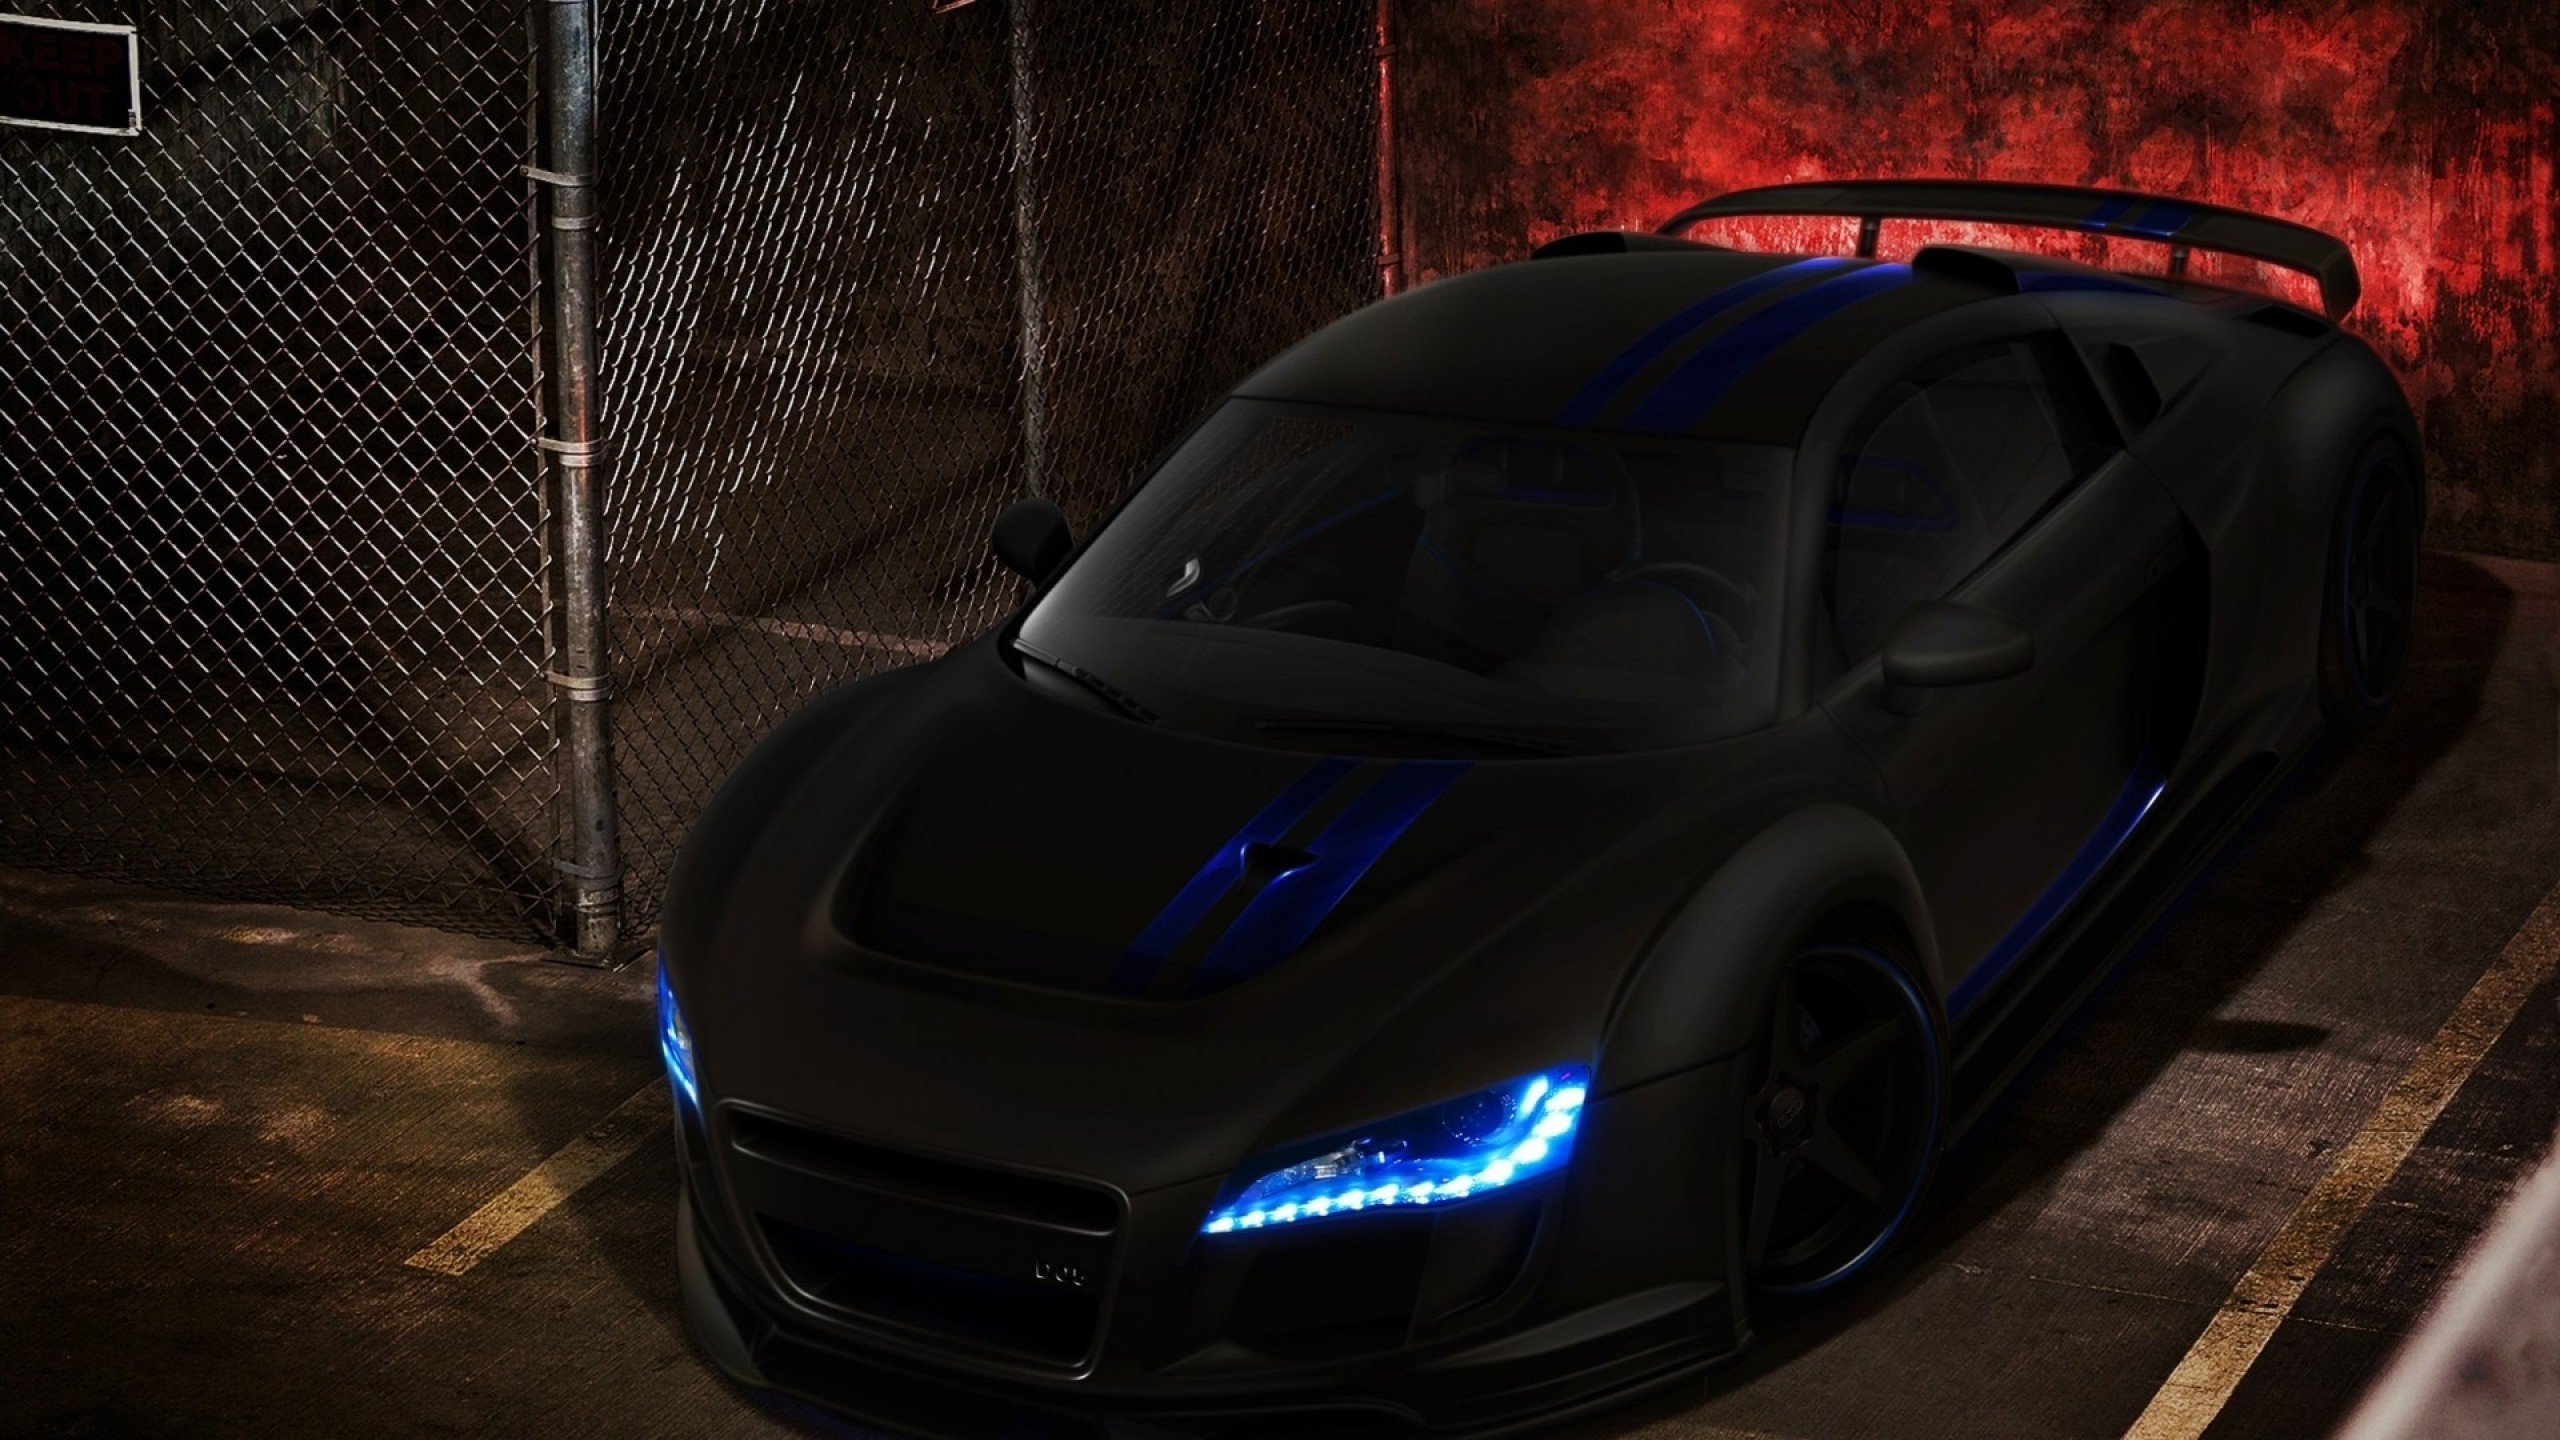 Audia R8 in matte black with cool lights #audi #r8 #wallpapers www.yours- cars.eu | Rides | Pinterest | Audi r8 wallpaper, Audi R8 and Audi